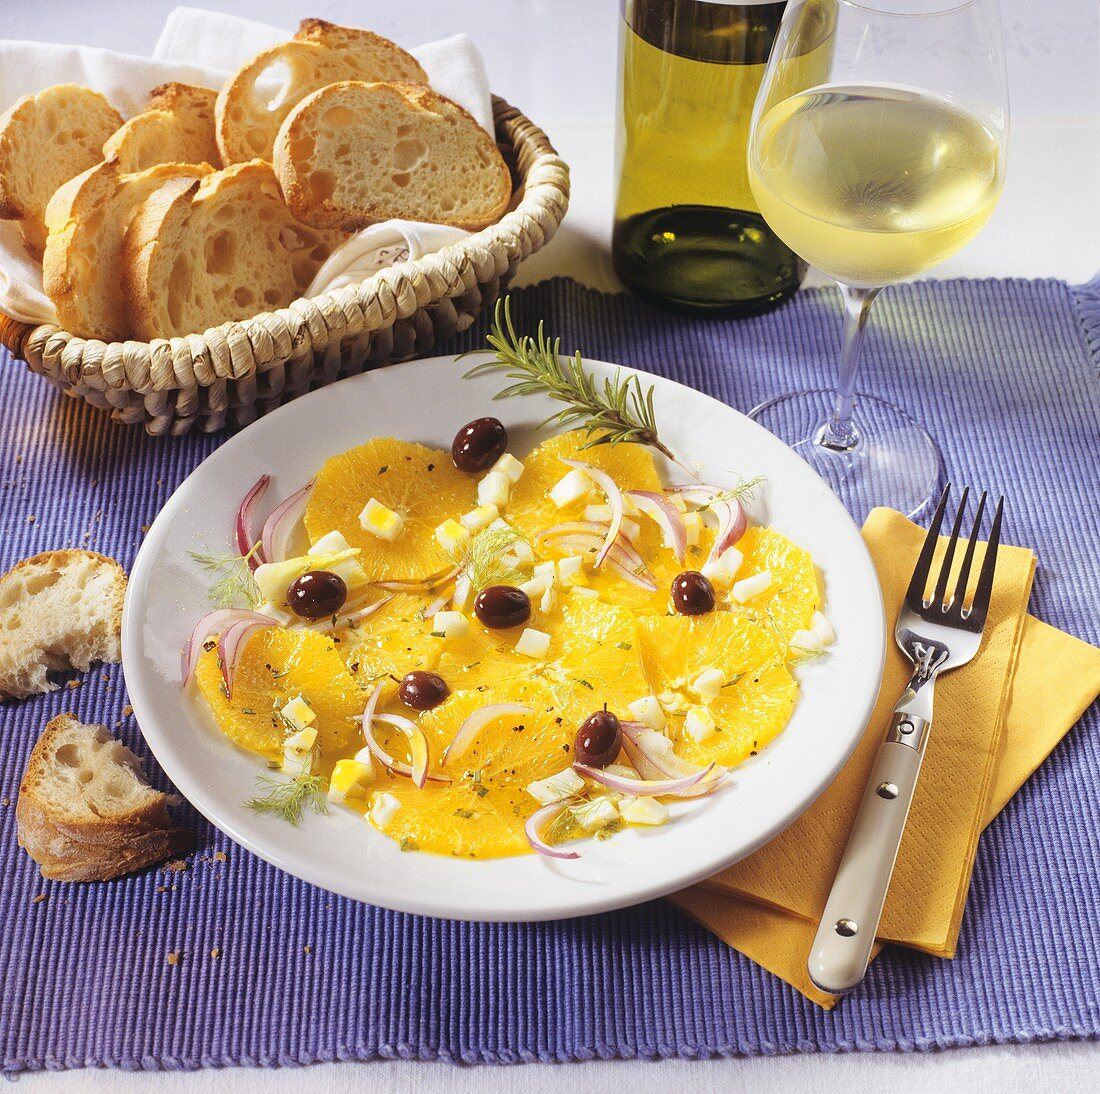 Orange salad with olives, fennel and onion (Sicily)